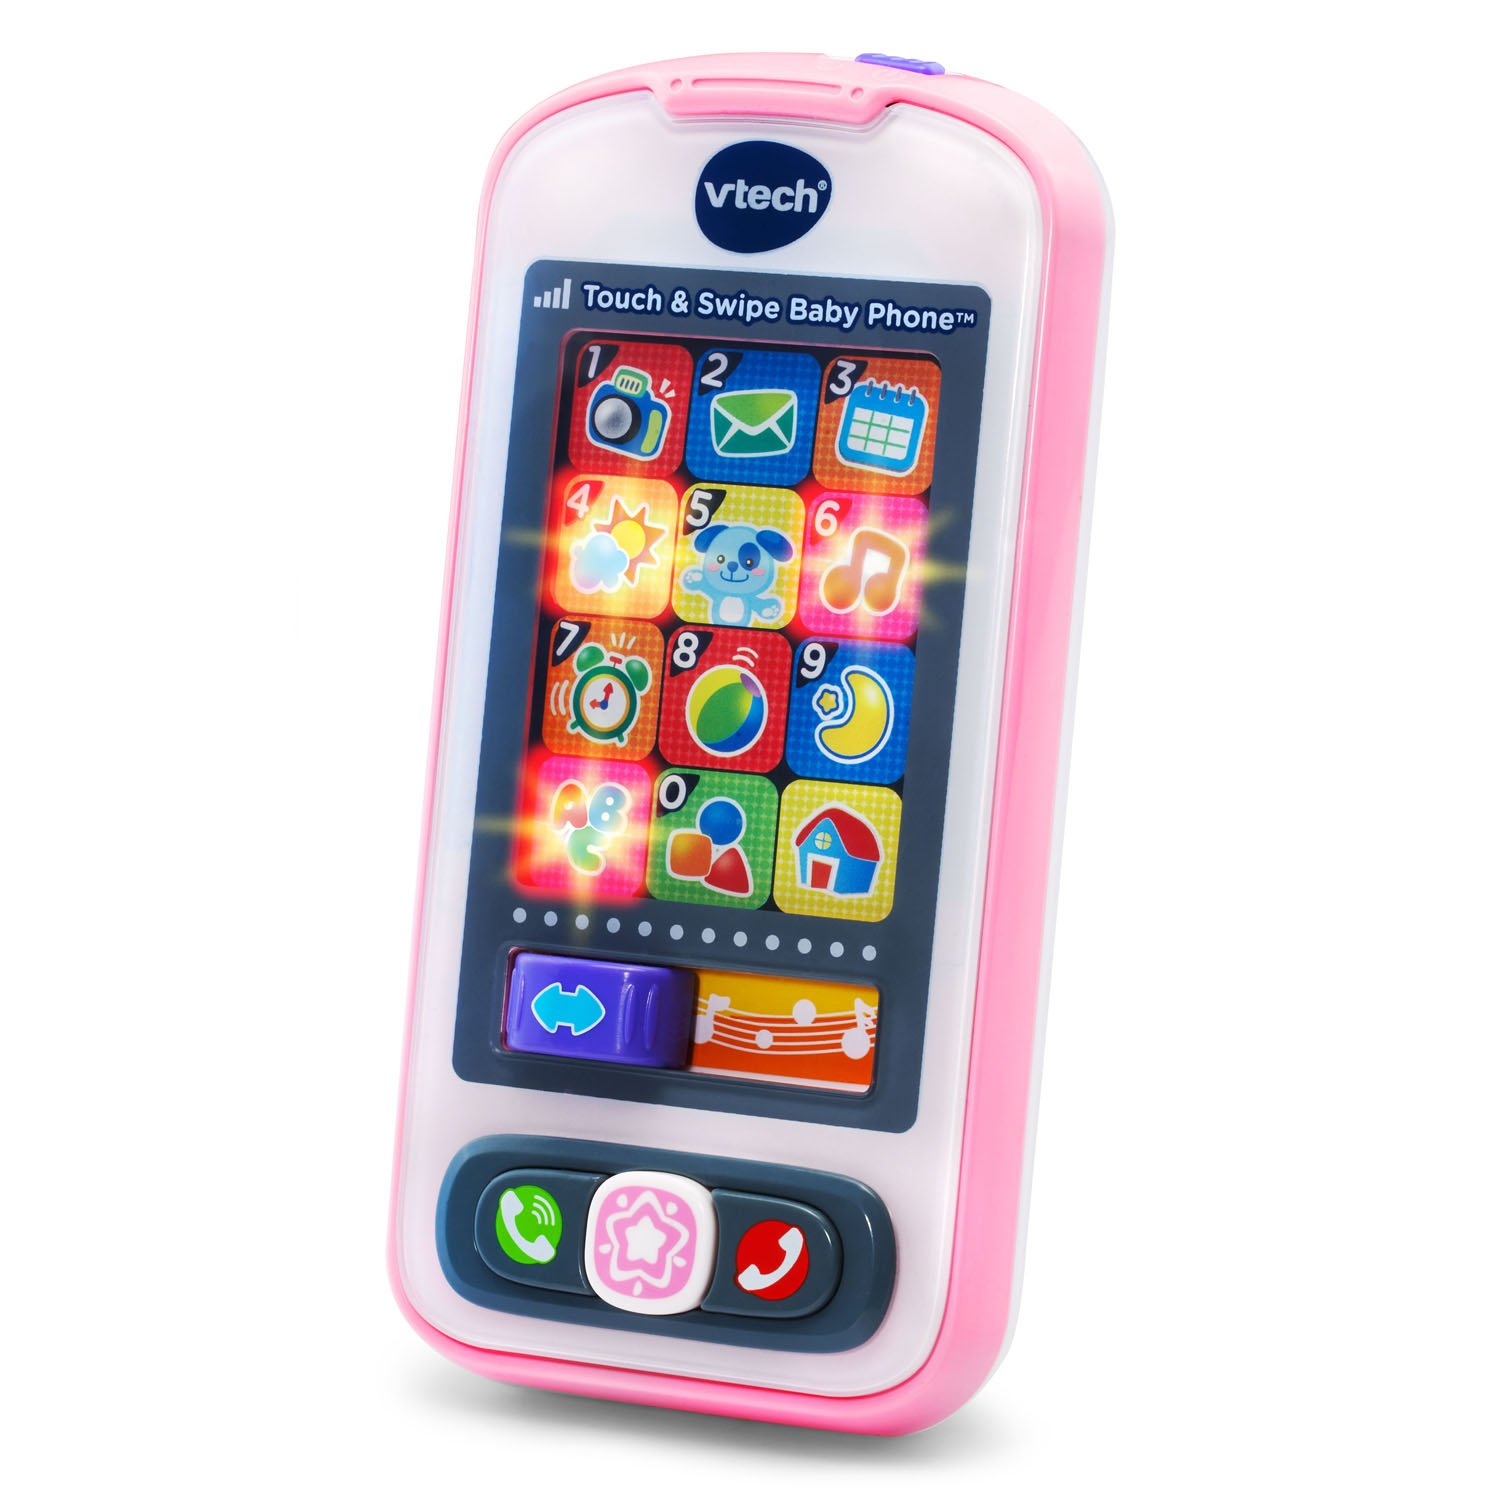 VTech Touch and Swipe Baby Phone - Pink - Online Exclusive